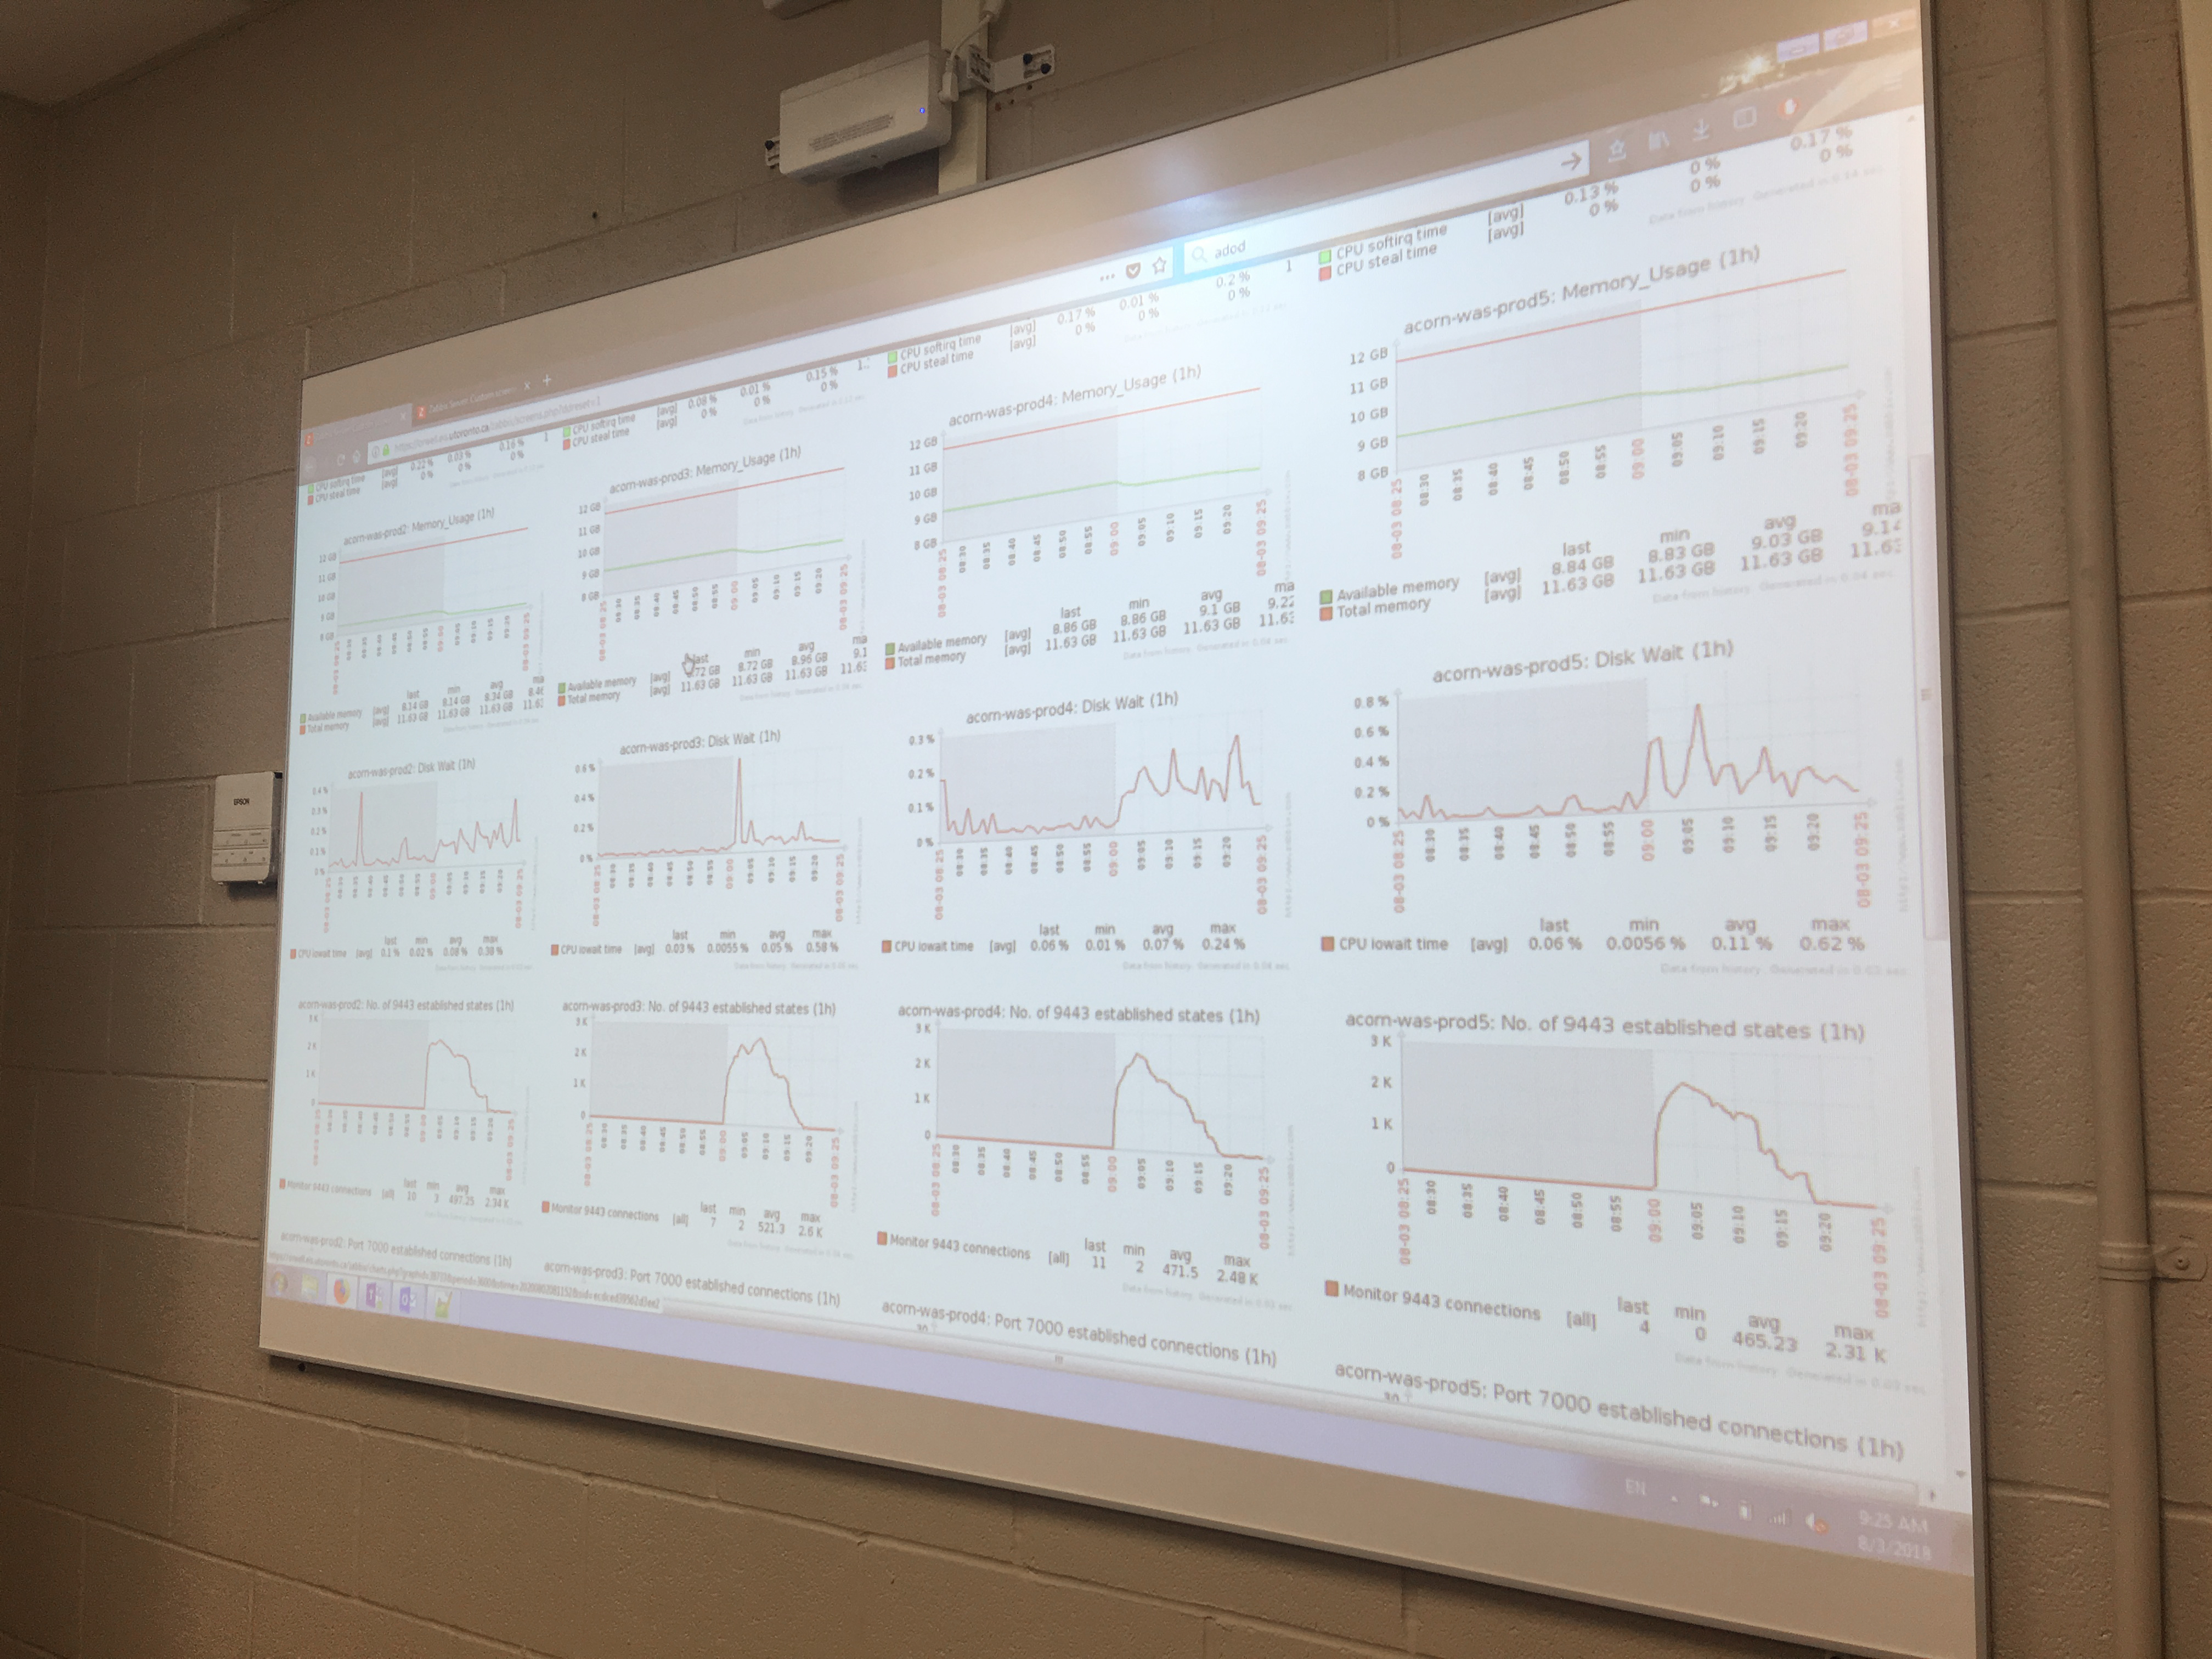 Live data on screen to monitor the load on the system